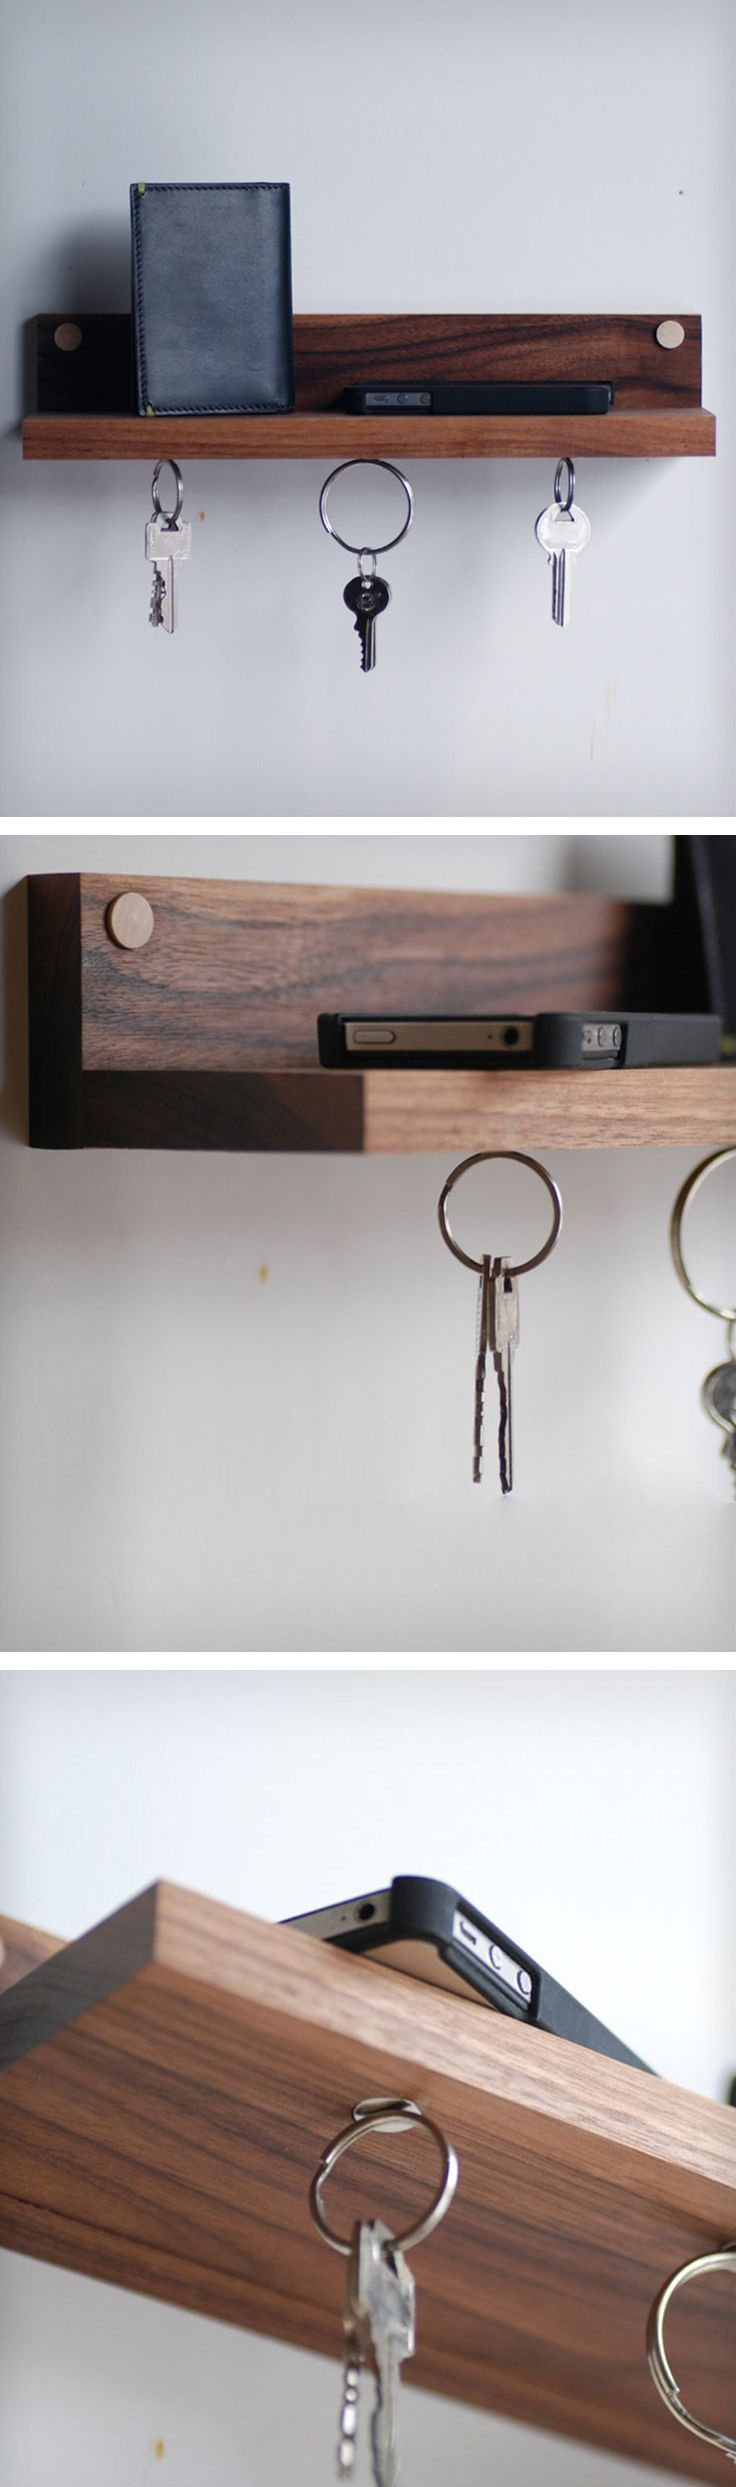 Magnetic wooden key shelf #productdesign